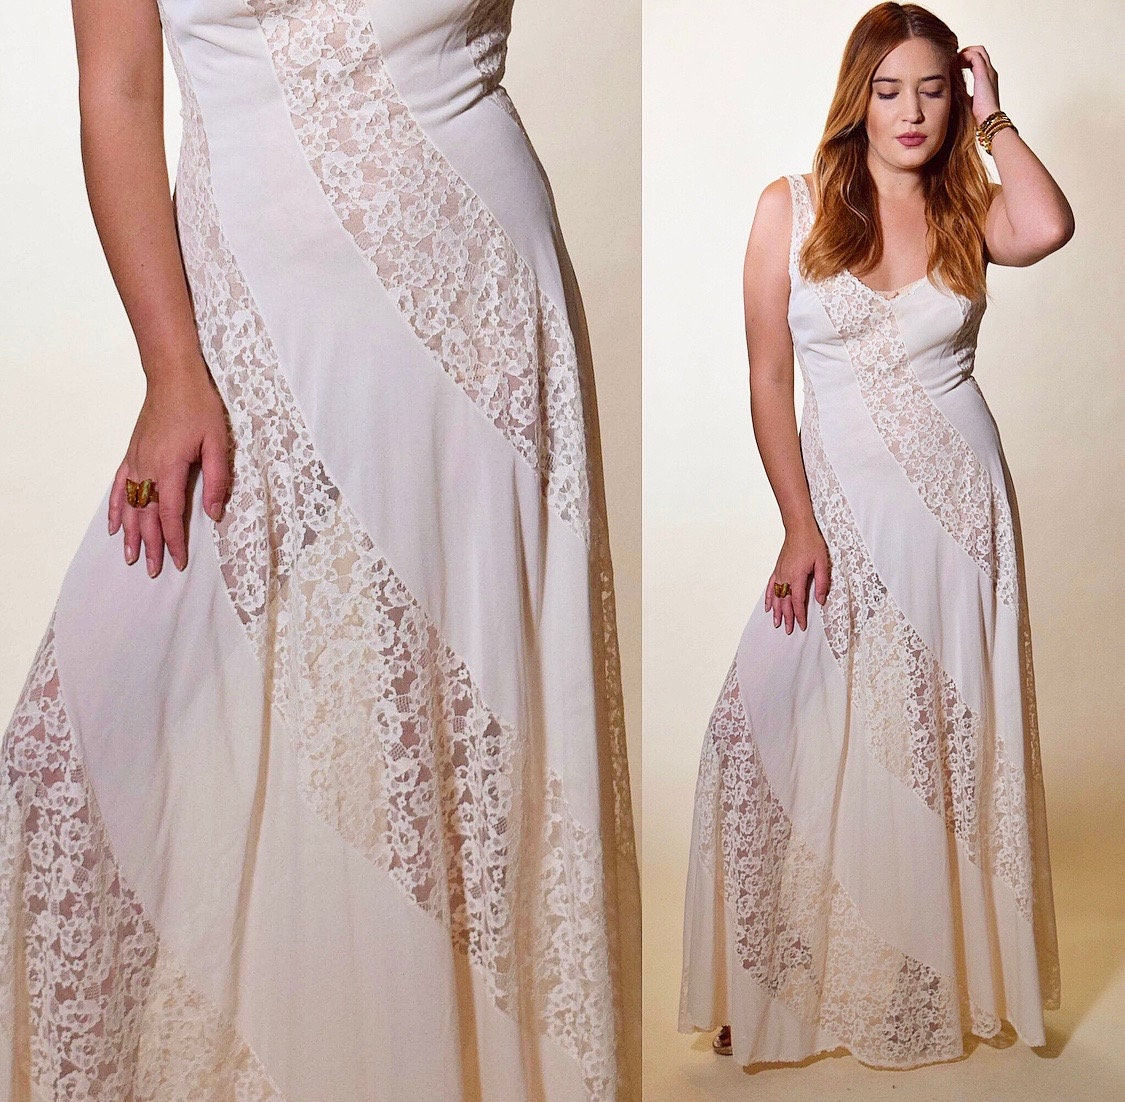 6c34852a94c 1970s authentic vintage off white nylon lace romantic sexy nightgown ...